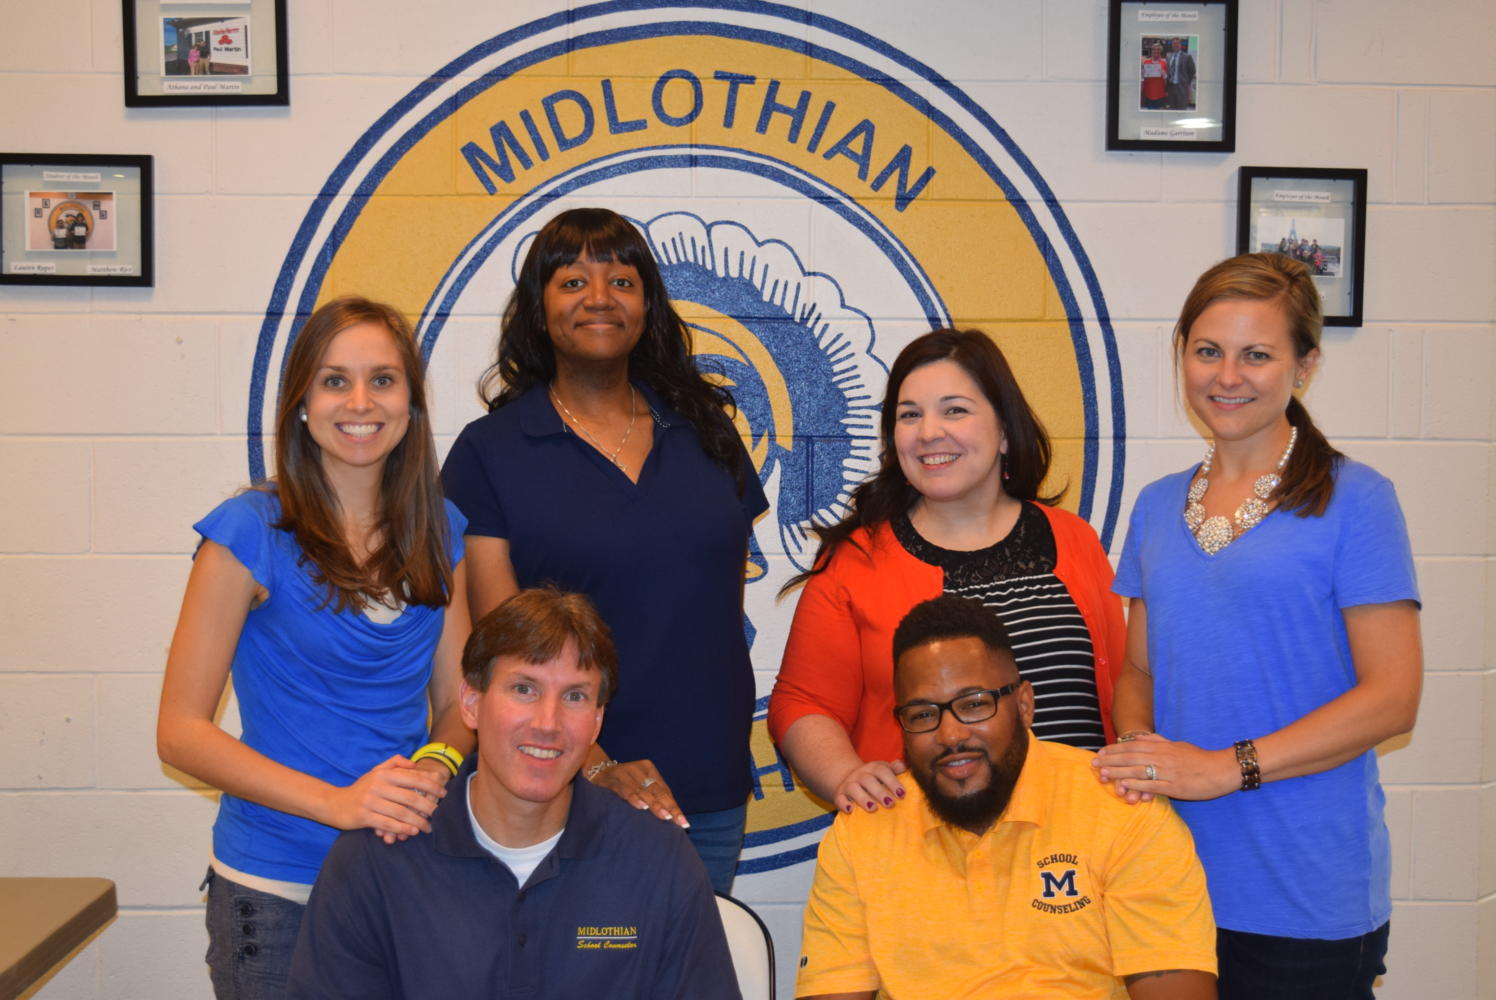 Midlothian High School Counseling Department  (back row, left to right): Mrs. Stacy Shore, Mrs. Loretta Speller, Ms. Laura Brady, and Mrs.    Lawson. (front row, left to right): Mr. Kevin Birmingham and Mr. Darnell Erby.